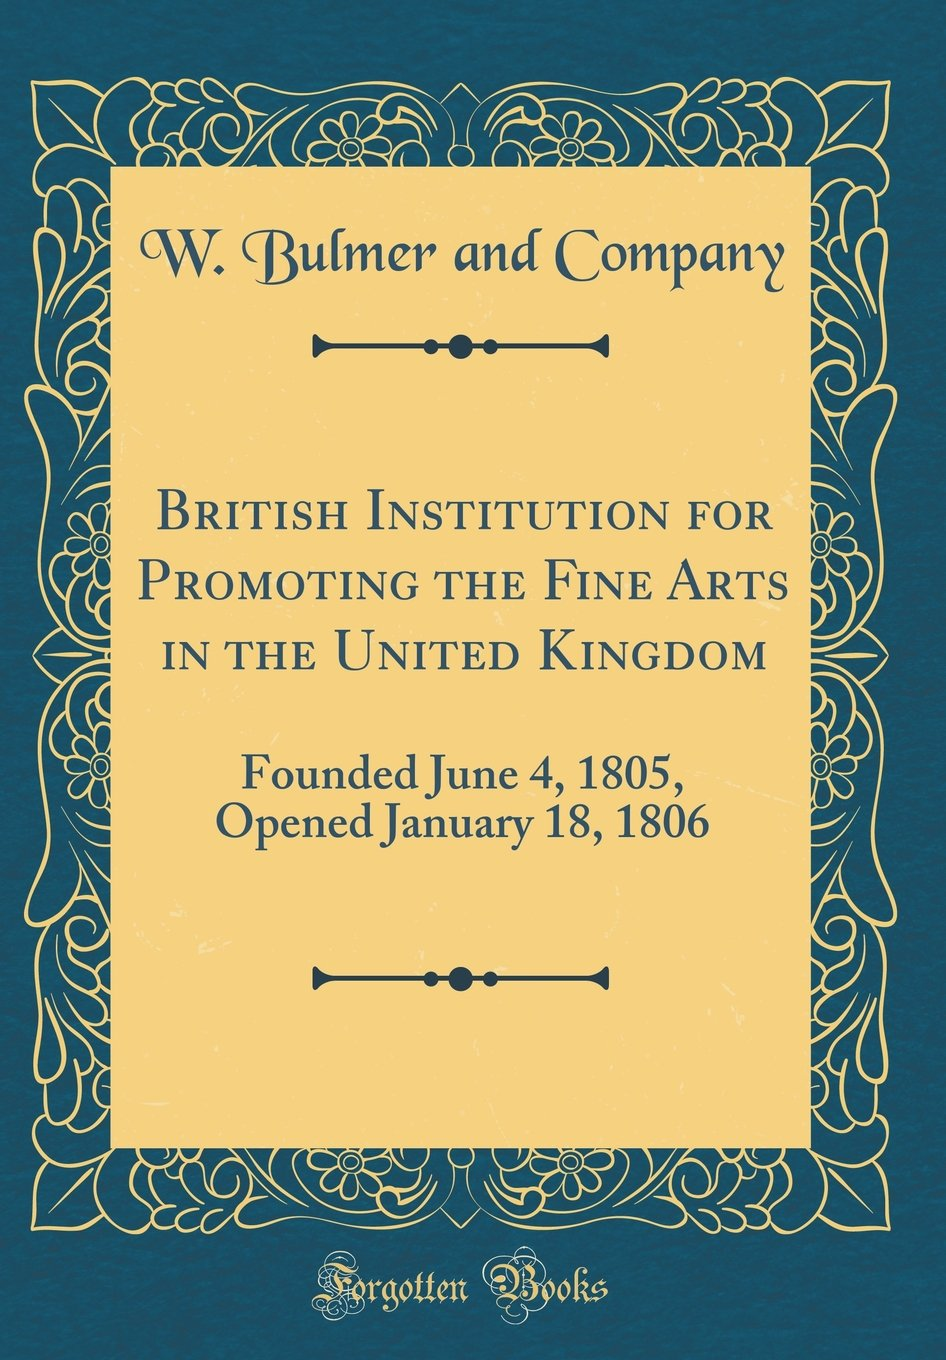 Download British Institution for Promoting the Fine Arts in the United Kingdom: Founded June 4, 1805, Opened January 18, 1806 (Classic Reprint) PDF ePub fb2 ebook